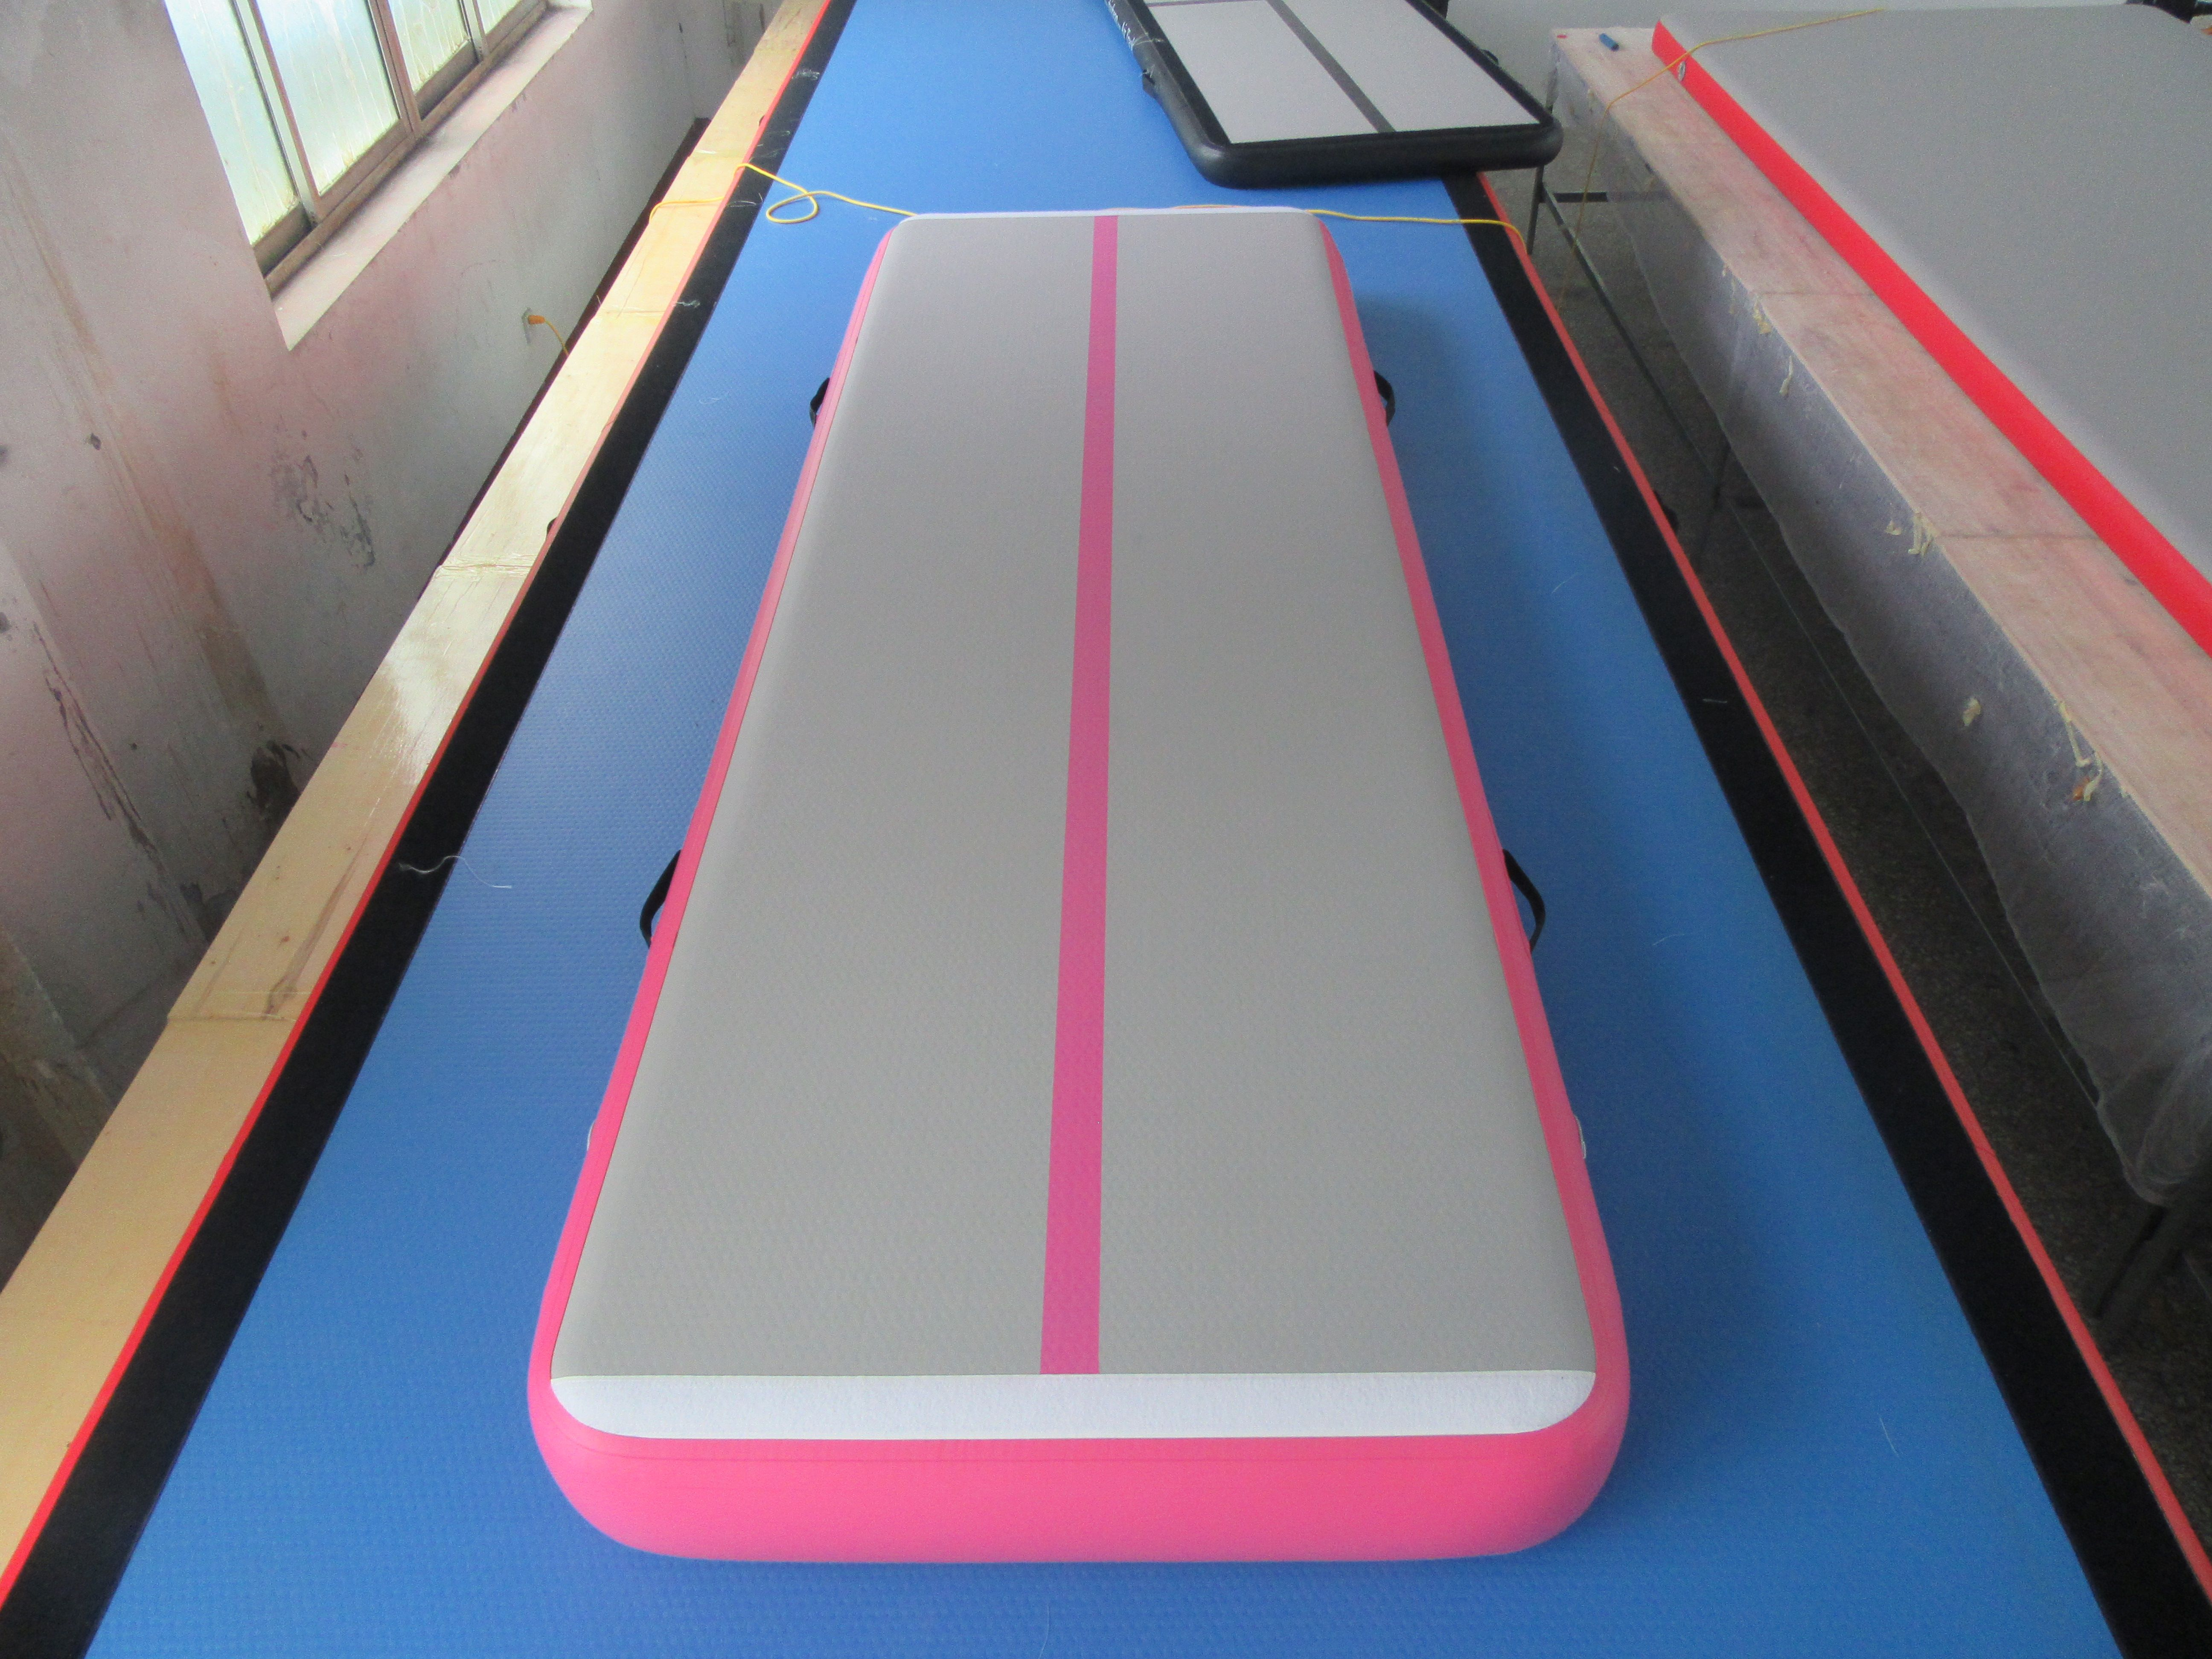 Pink Color 3 1 0 2m Air Track Inflatable Air Track Airtrack Slip